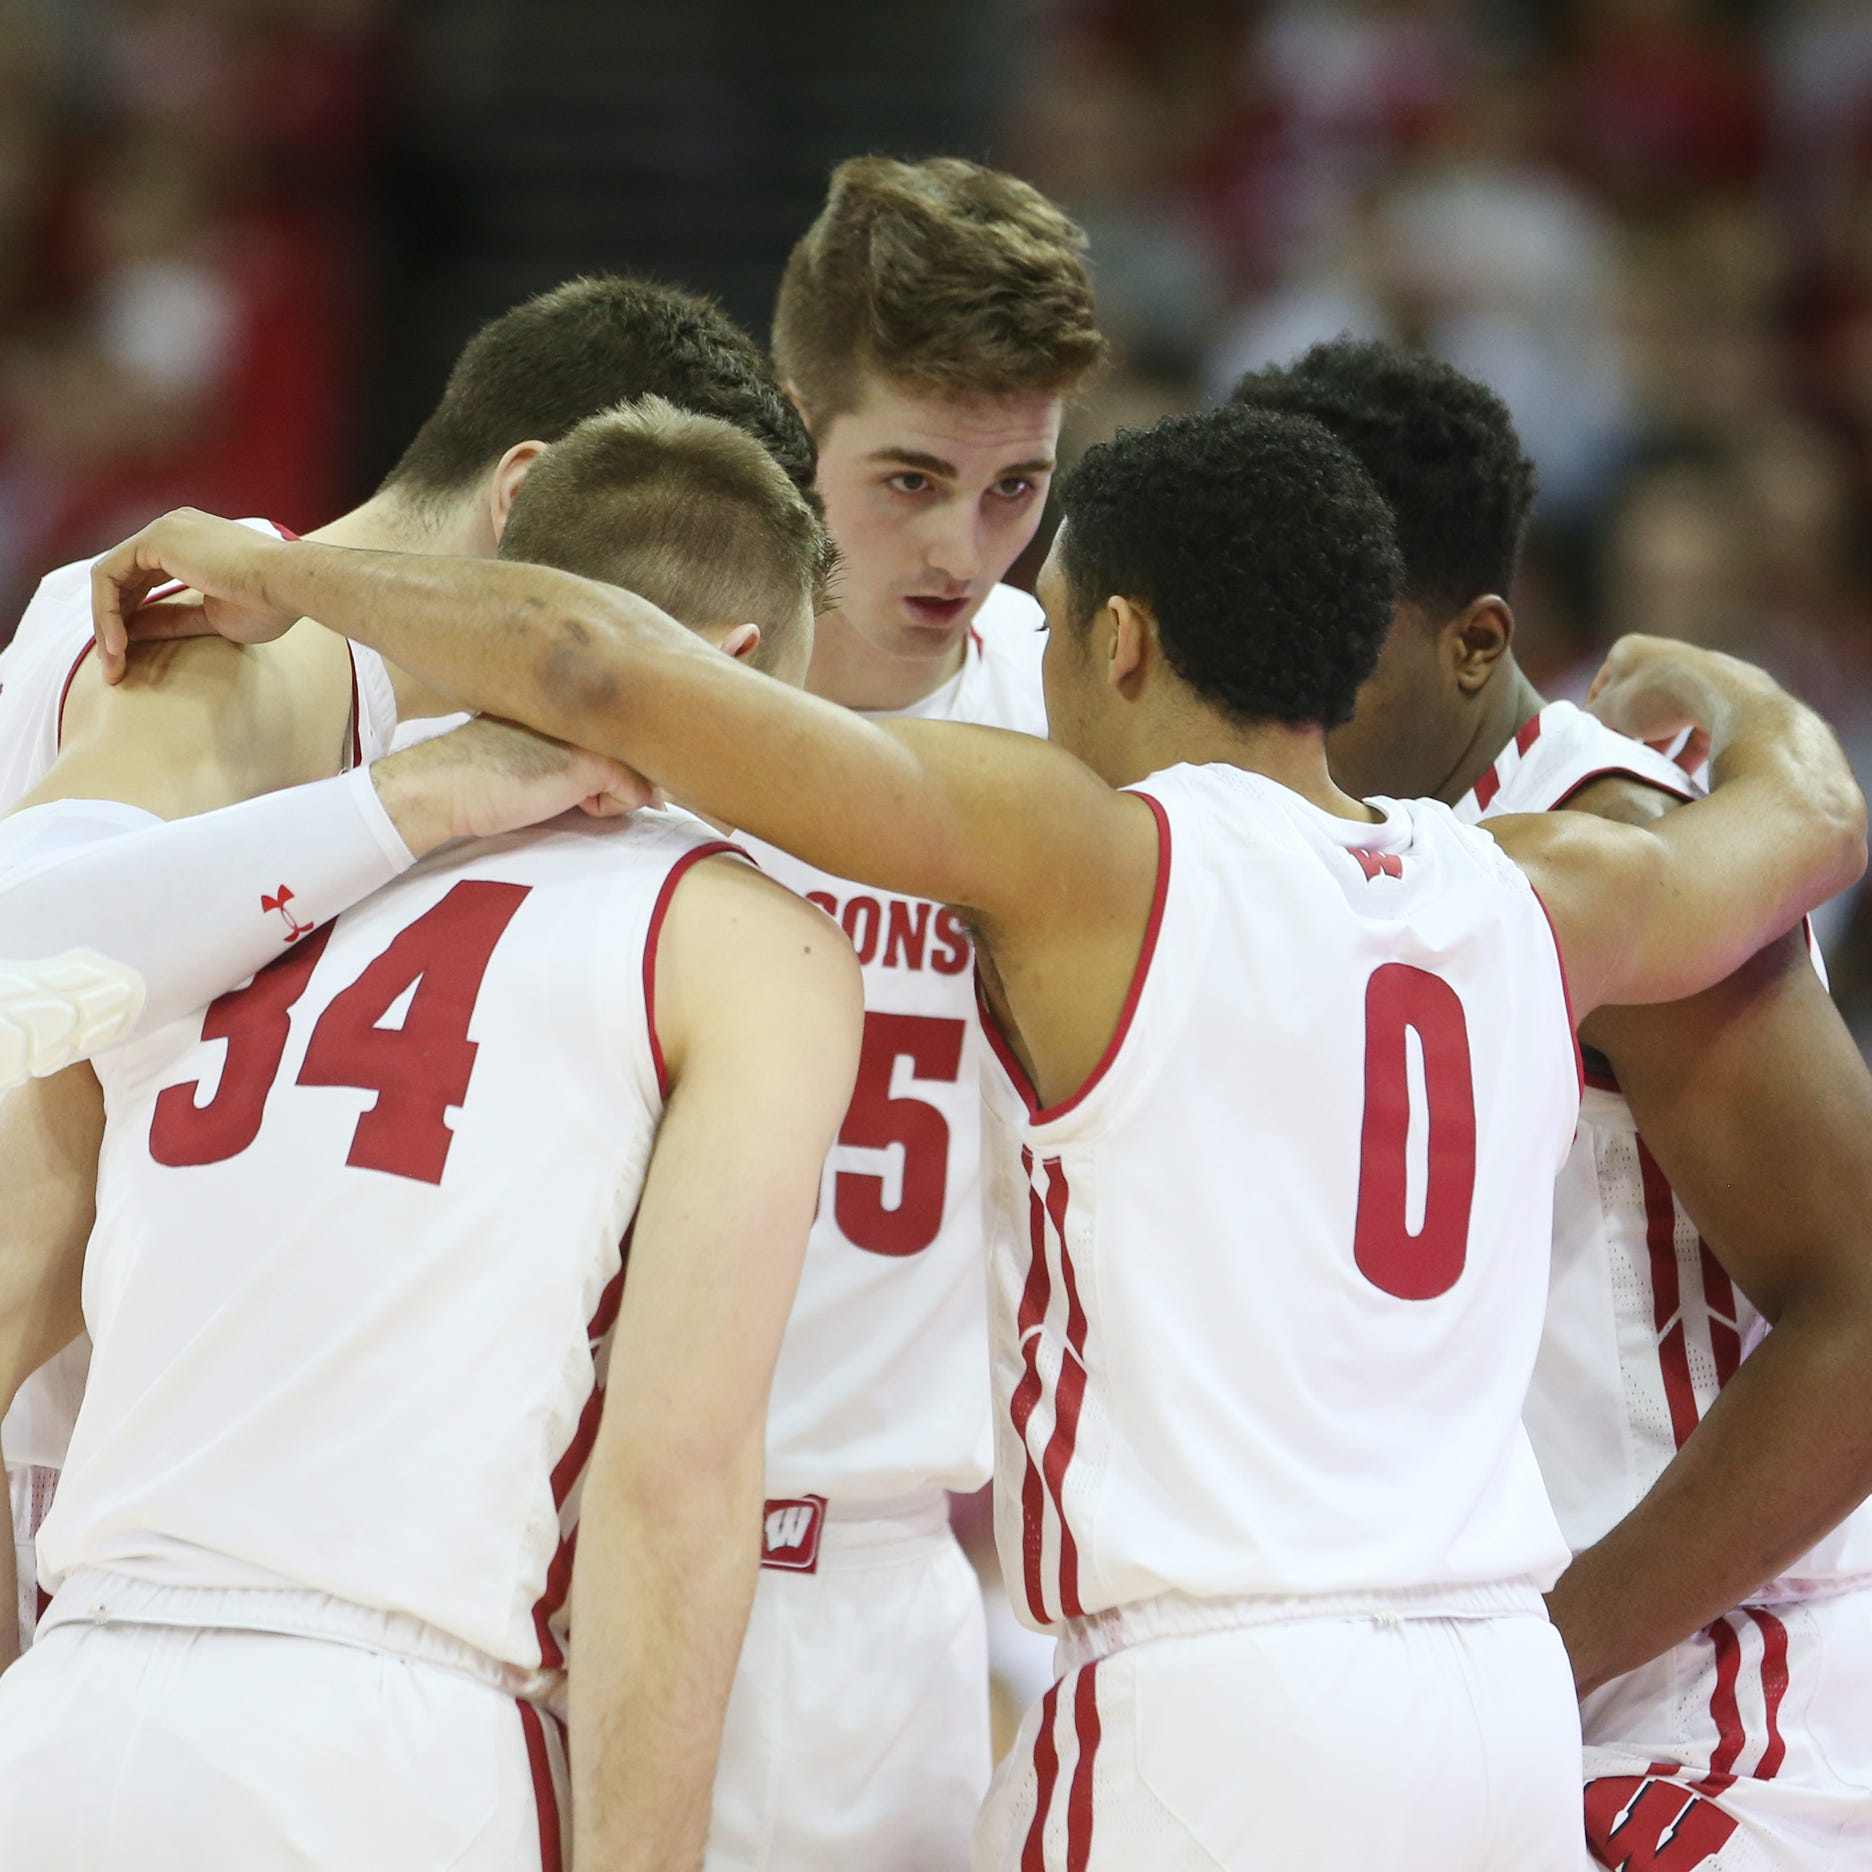 Wisconsin coach Greg Gard and his staff face myriad questions after early NCAA exit